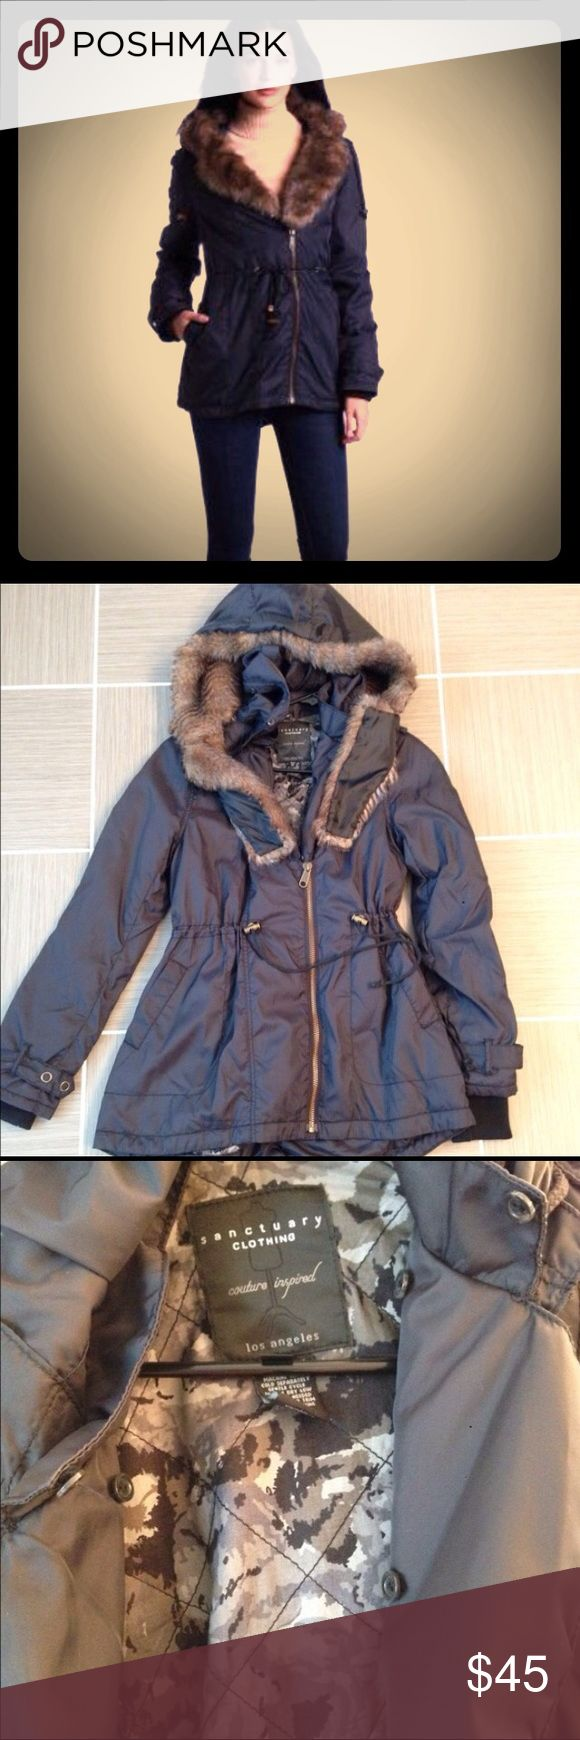 Sanctuary navy parka with removable faux fur Sanctuary navy parka with removable fur hood , lined and size xs (runs a little big would fit small as well). Worn a couple times in great condition. Sanctuary Jackets & Coats